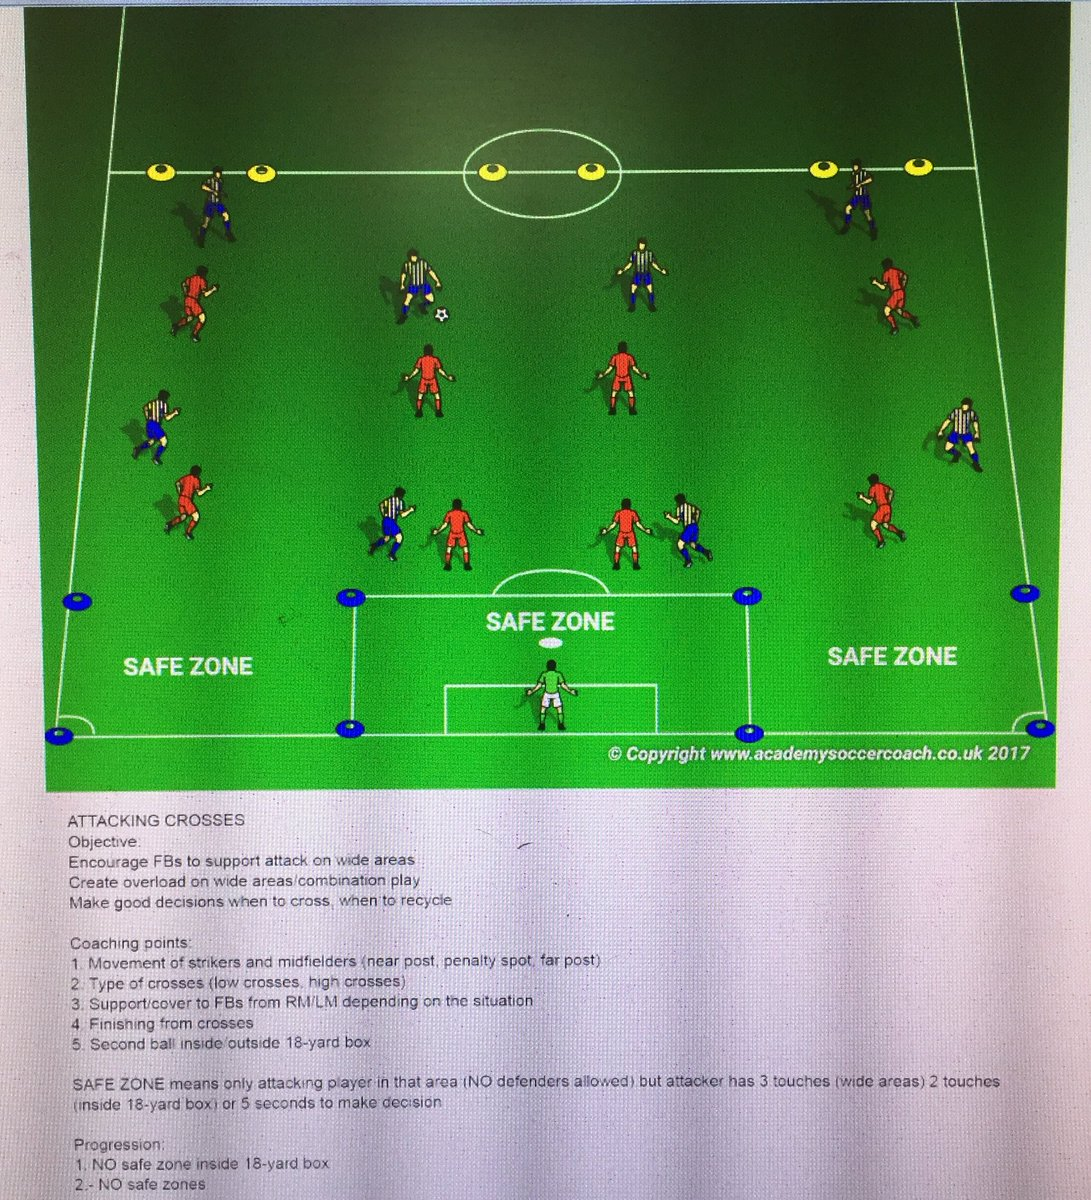 ATTACKING IN WIDE AREAS session #football #coach #soccer<br>http://pic.twitter.com/5uHXLEZMKF